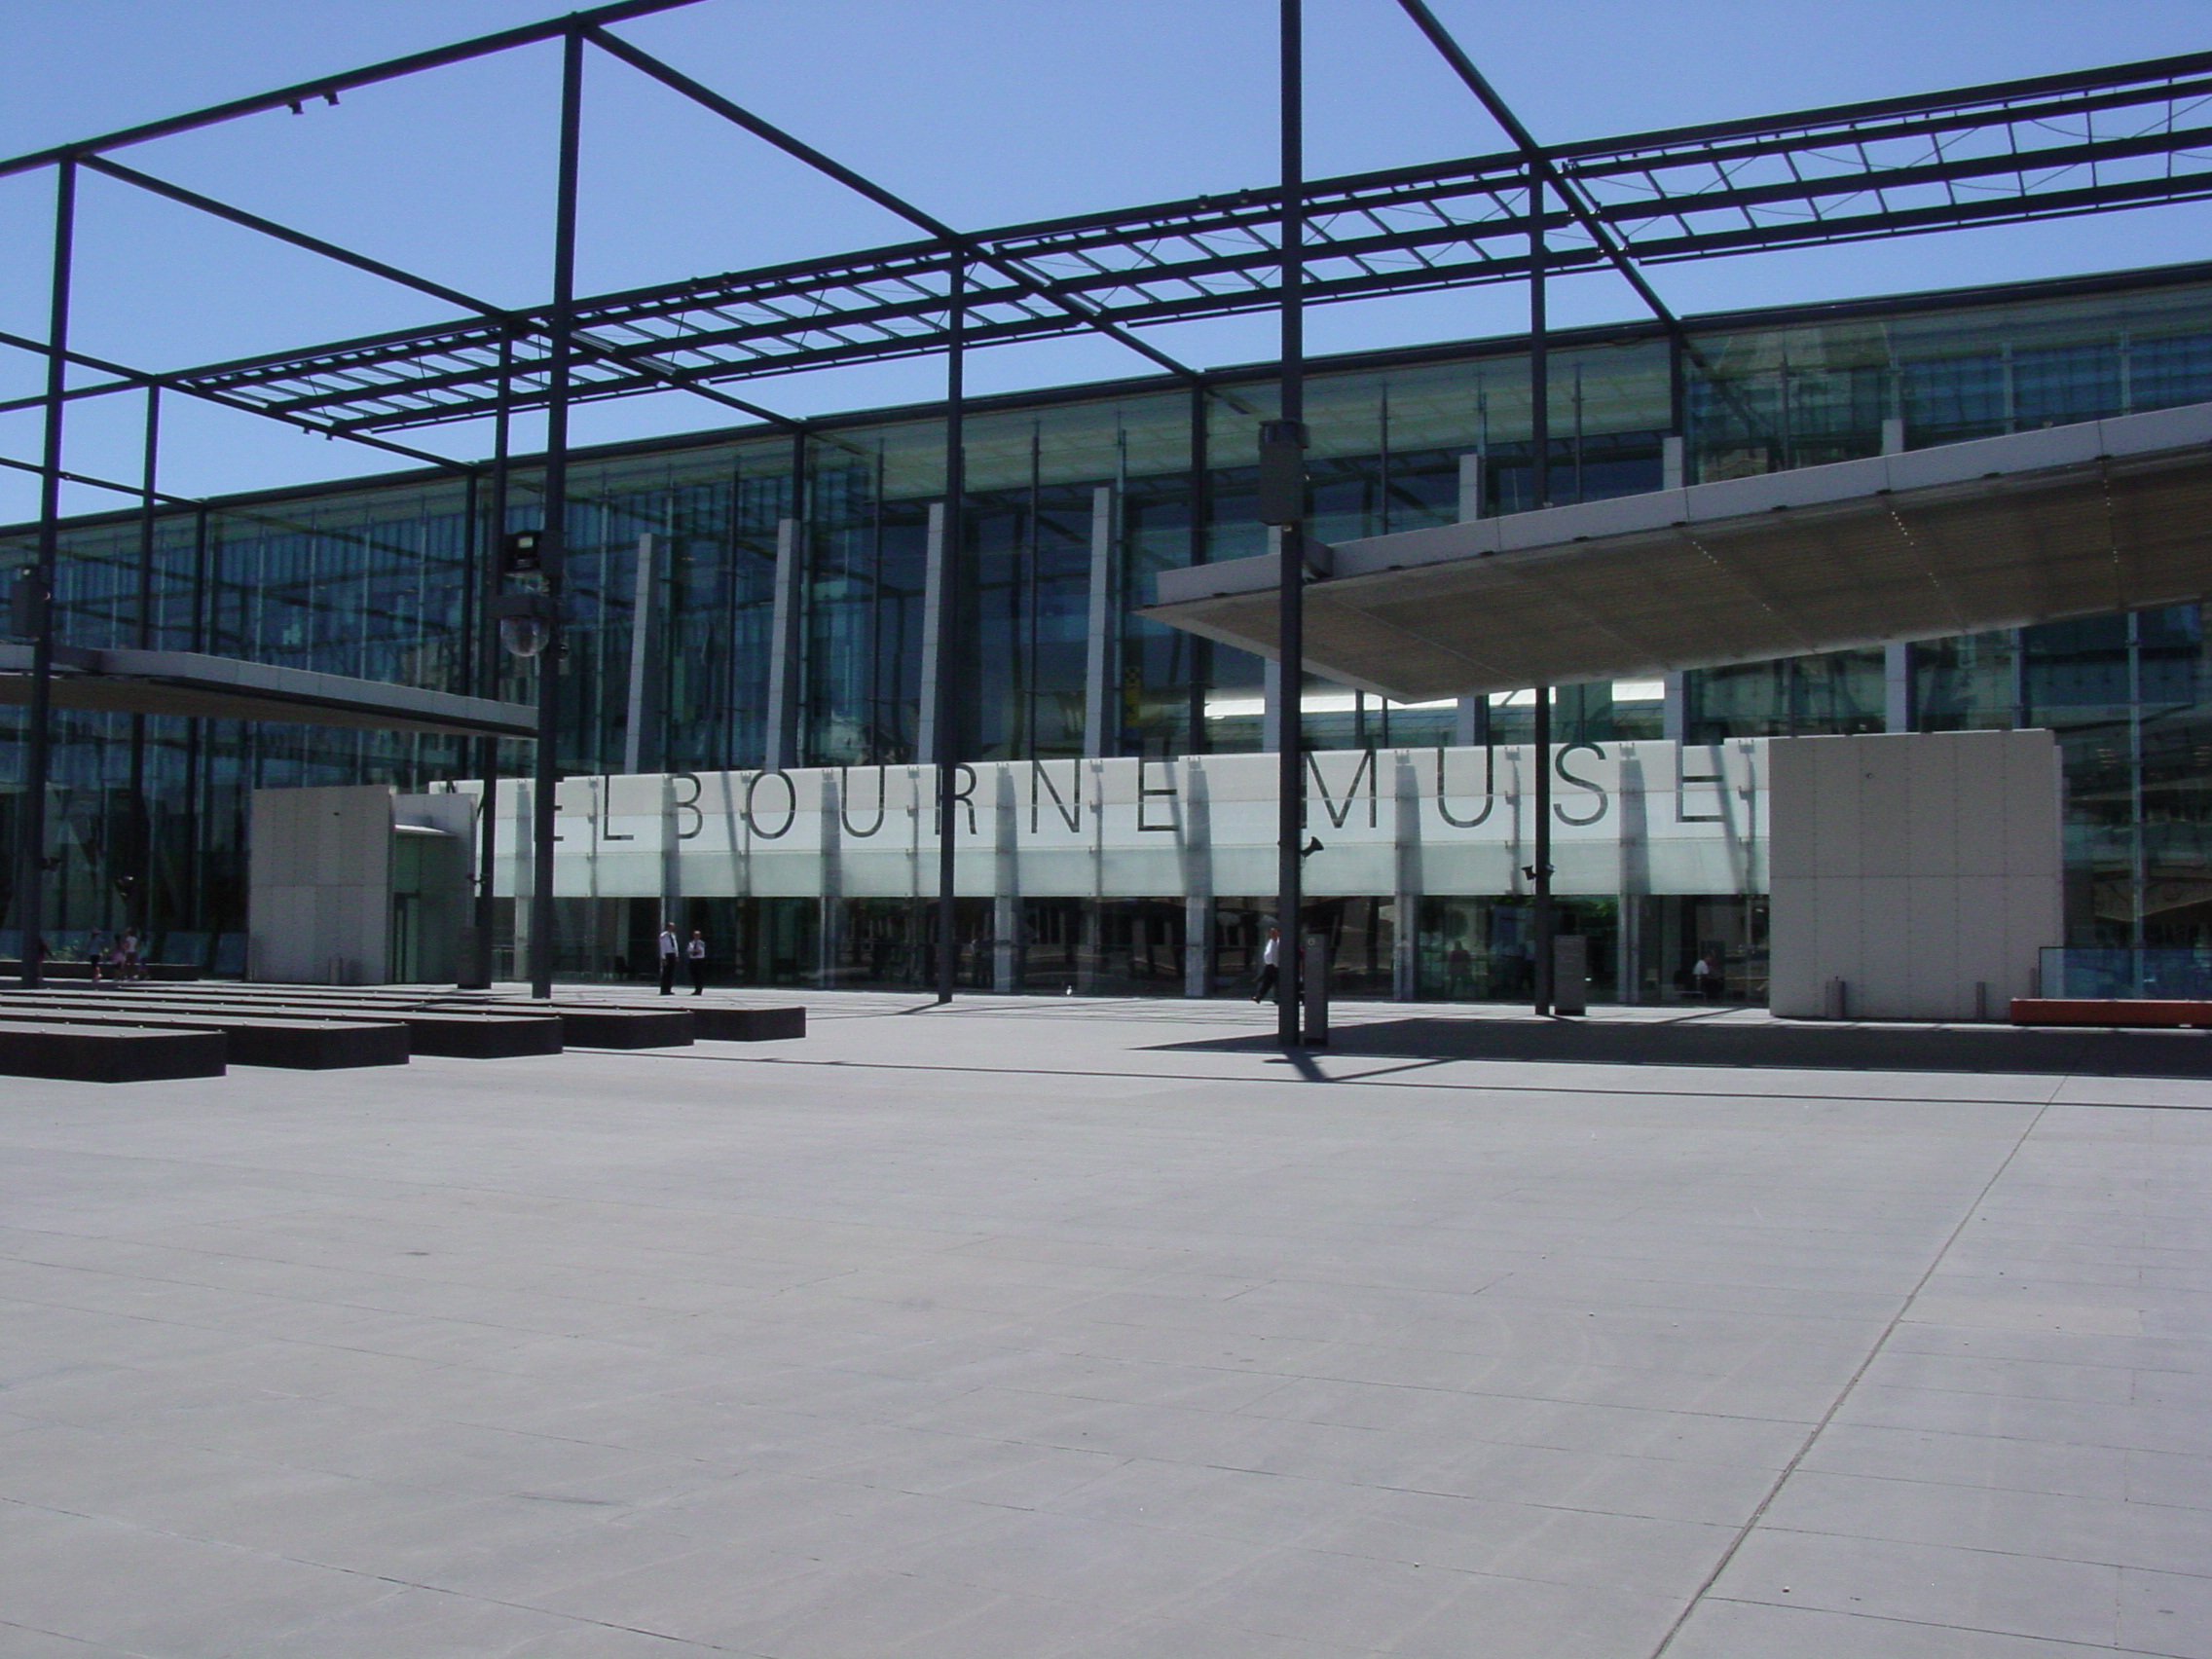 The Melbourne Museum